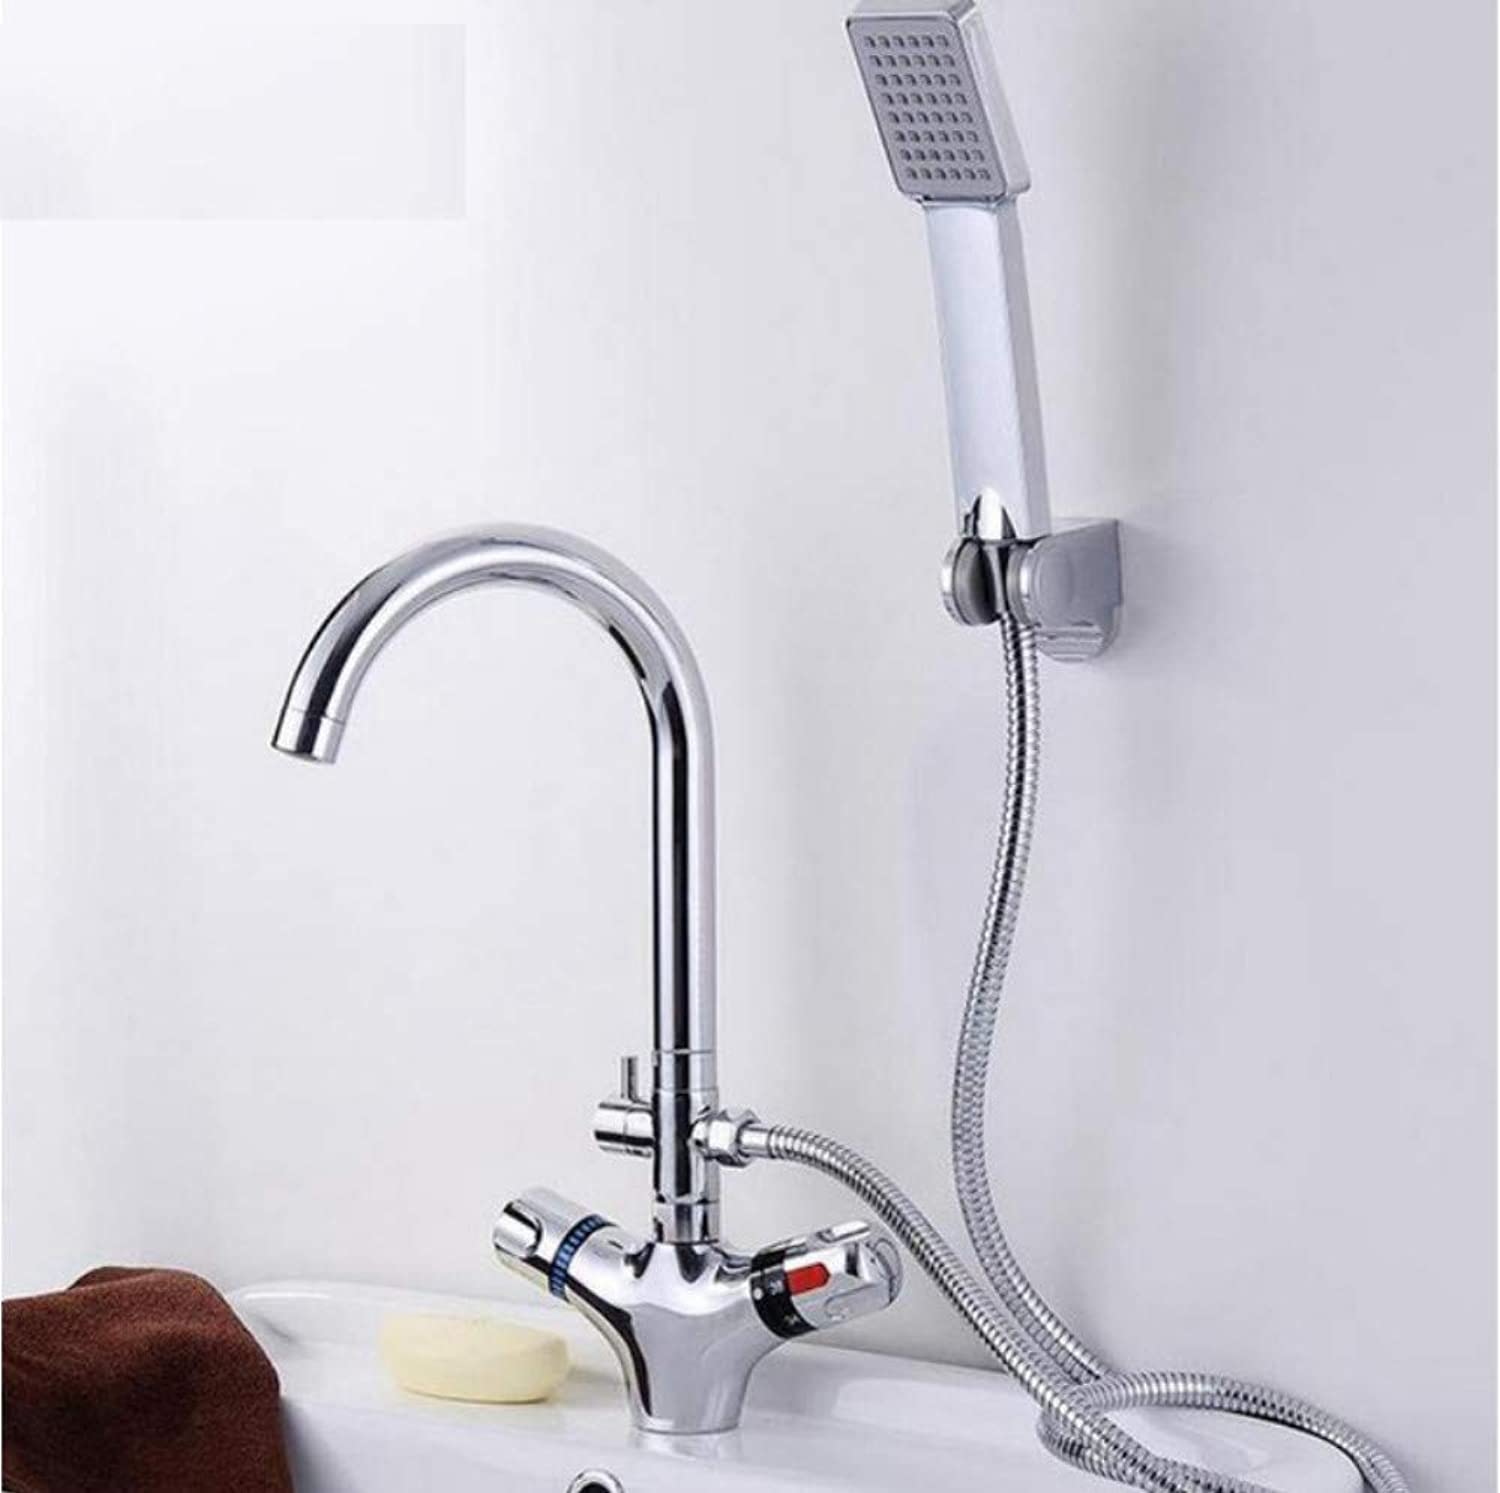 Dwthh Bathroom Basin Faucet Thermostatic Water Tap Mixer with Hand Shower Cold and Hot Water Mixer Bathtub Faucets